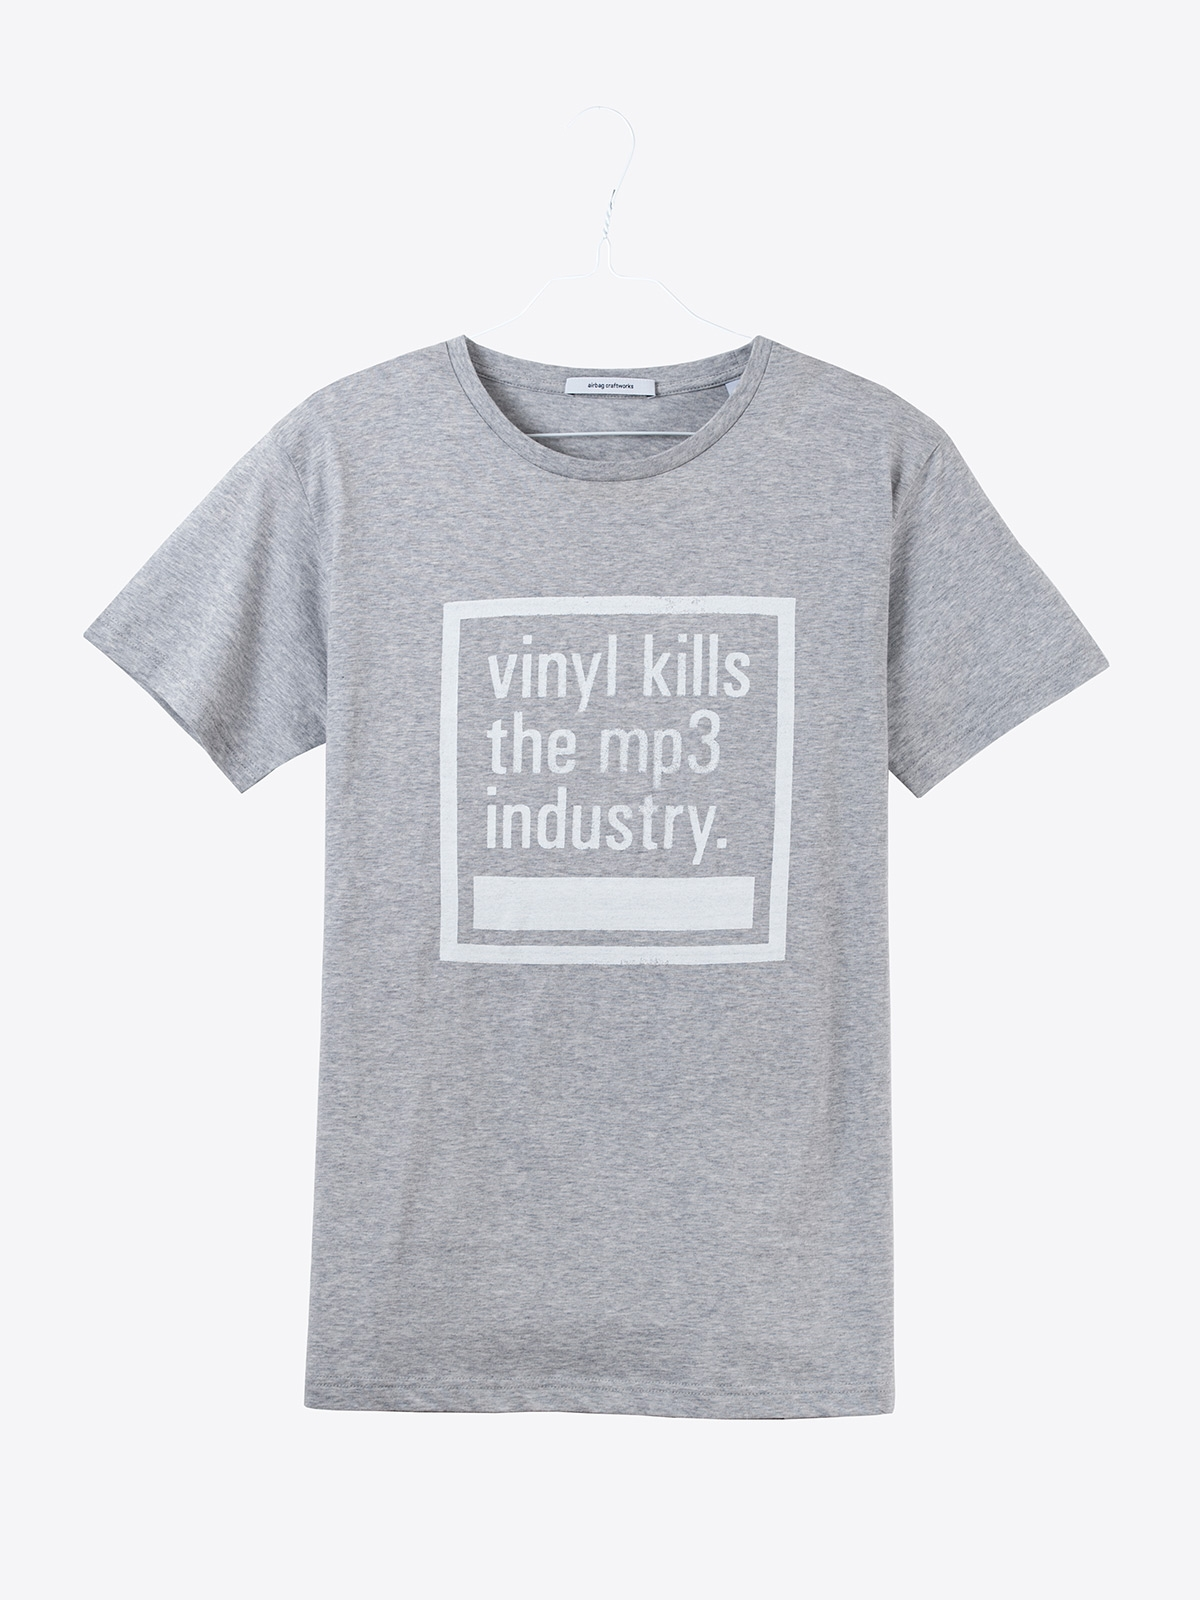 airbag craftworks vinyl kills the mp3 industry